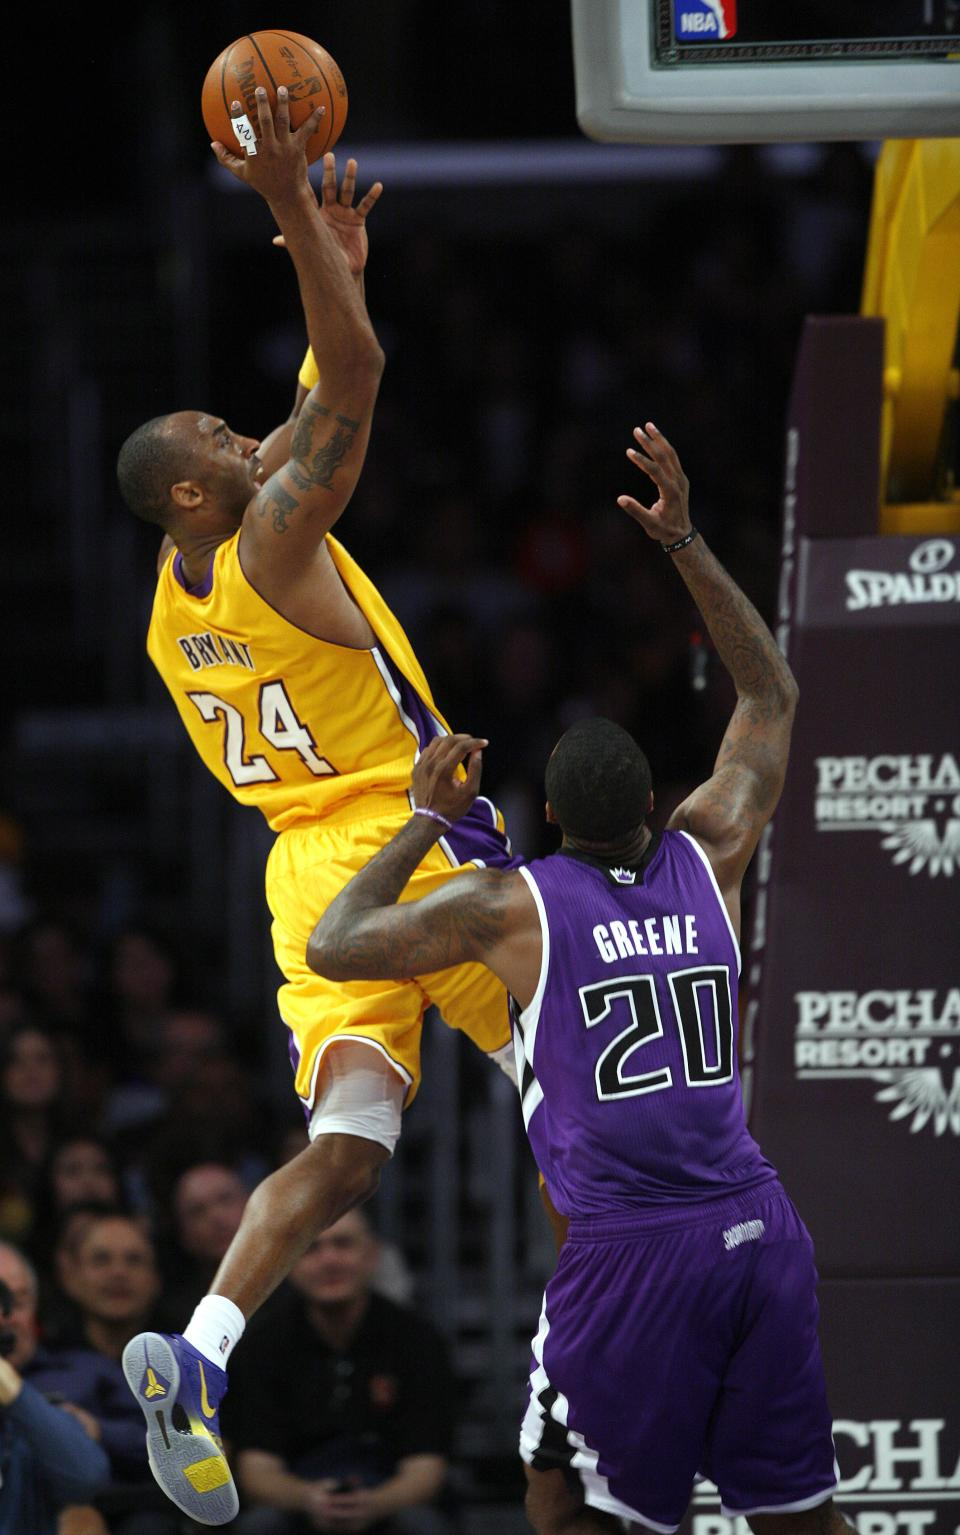 Los Angeles Lakers guard Kobe Bryant (24) shoots as Sacramento Kings forward Donte Greene (20) defends during the first half of their NBA basketball game, Friday, Dec. 3, 2010, in Los Angeles. (AP Photo/Jason Redmond)